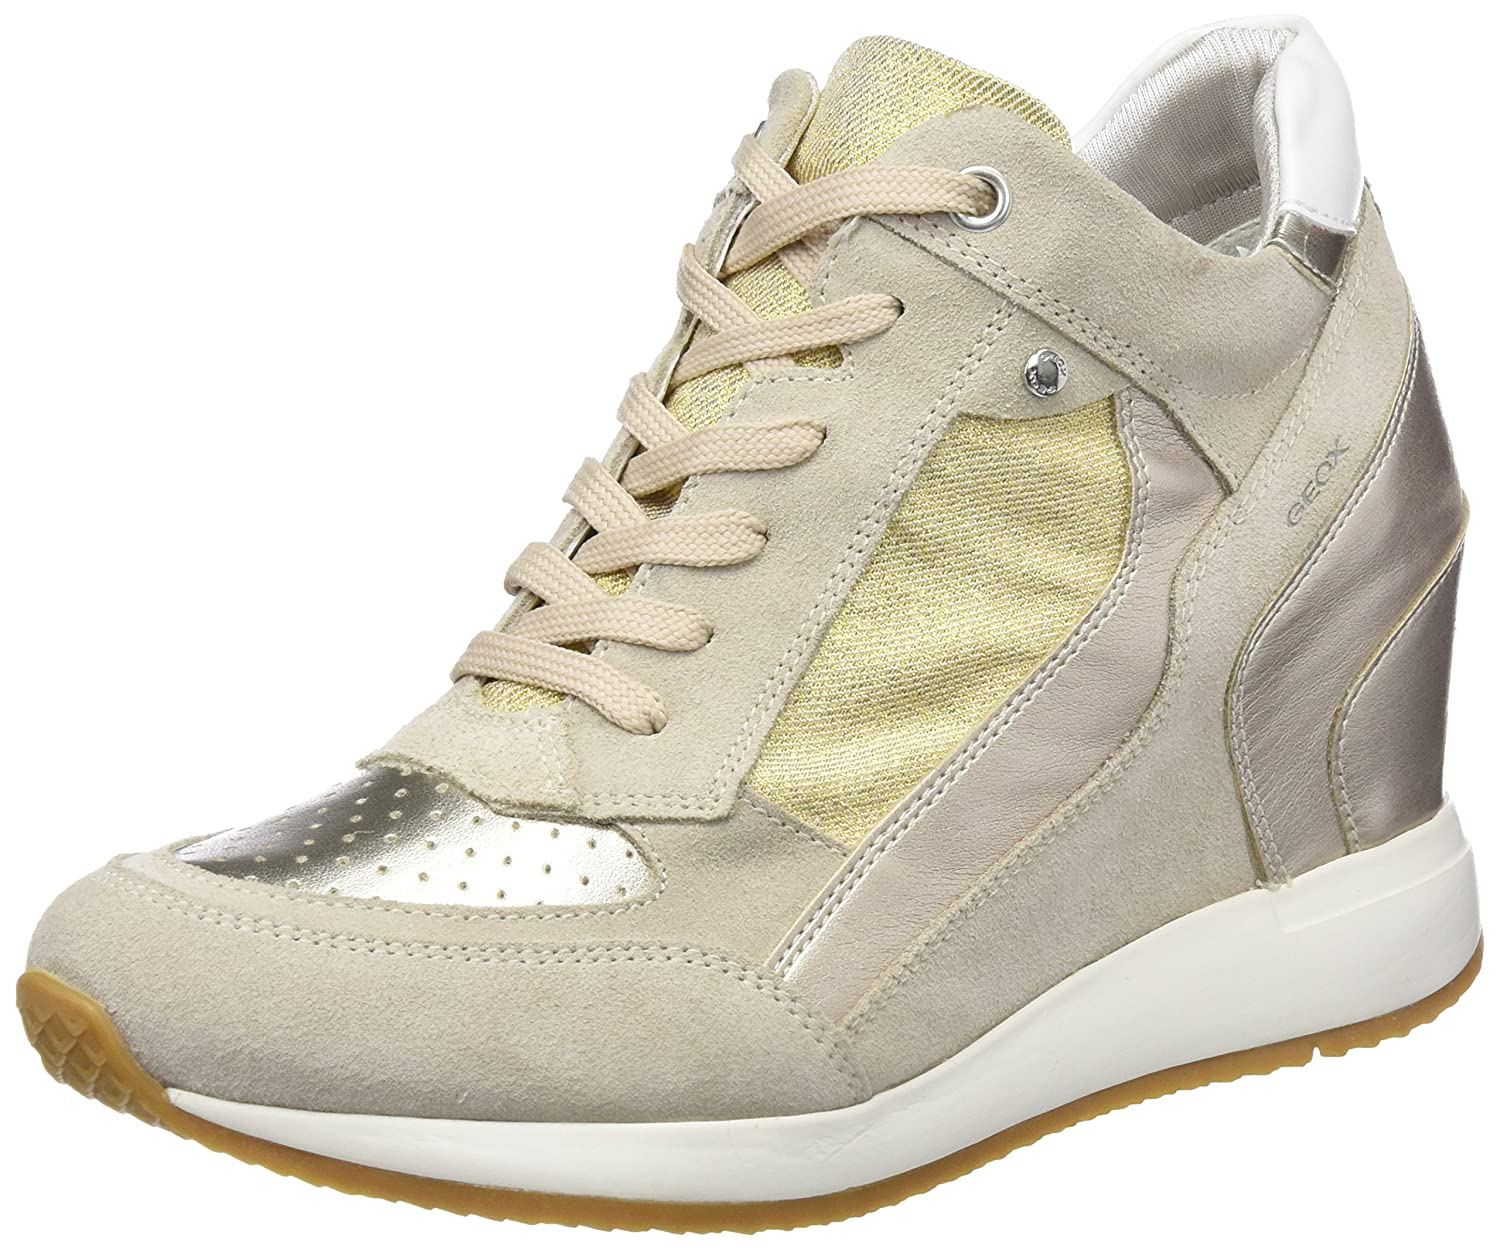 Geox Nydame, Hauszapatos Altas para mujer Beige (Lt Taupe  Lt oro)